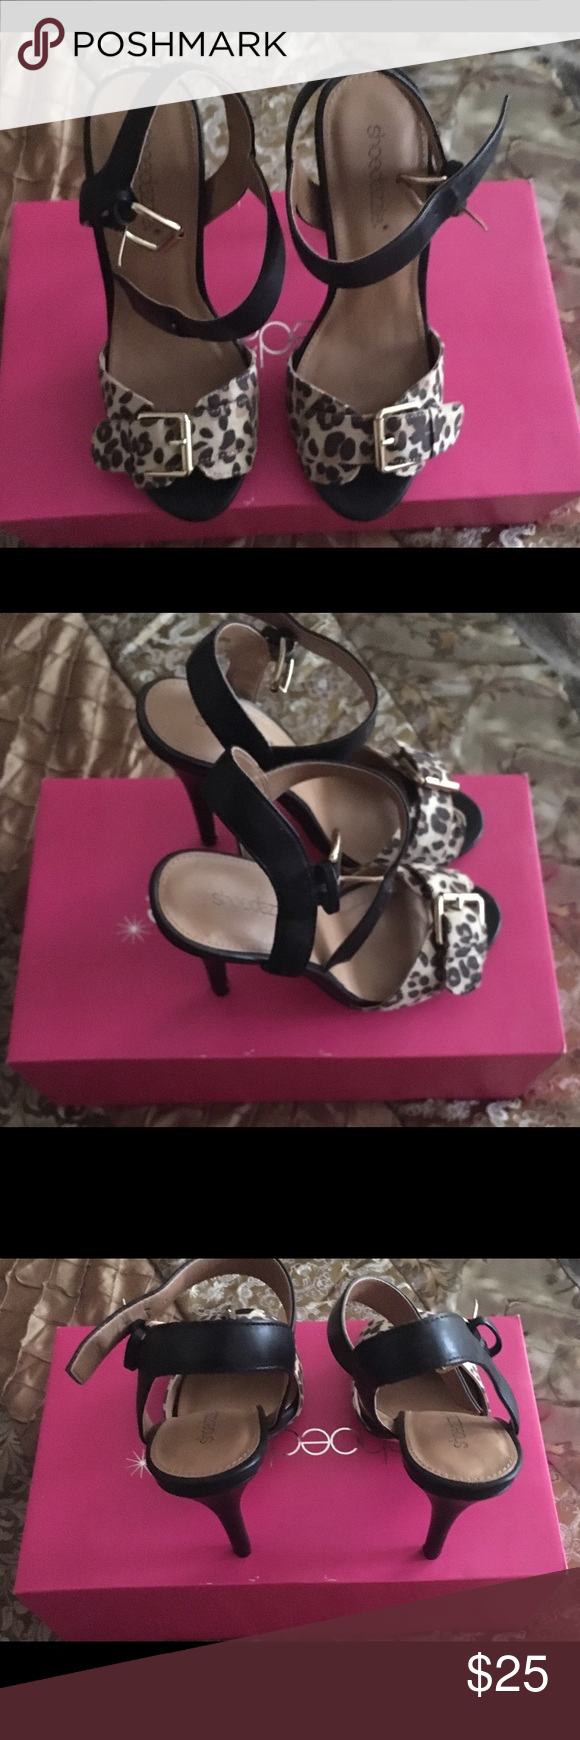 Leopard Heels Worn once, ordered wrong size.   Beautiful sexy leopard heels for a night out on the town or with jeans Shoe Dazzle Shoes Heels